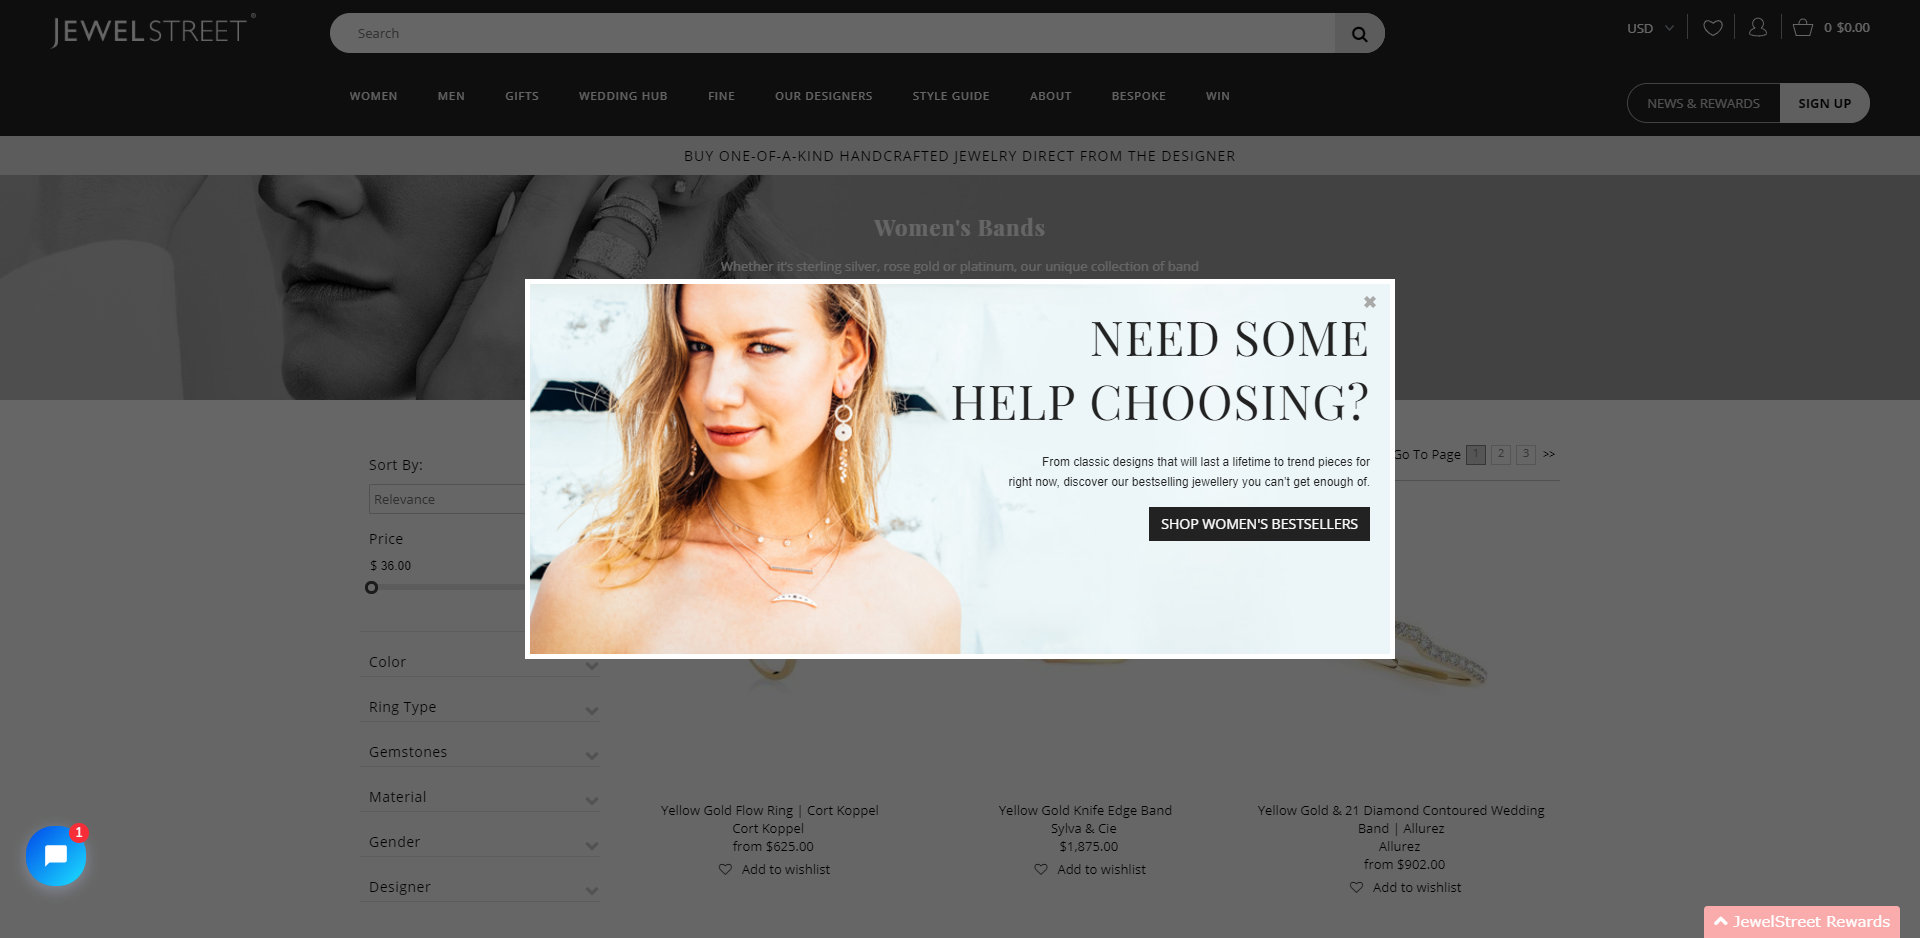 An exit popup displayed on the Women's category page - Jewelstreet